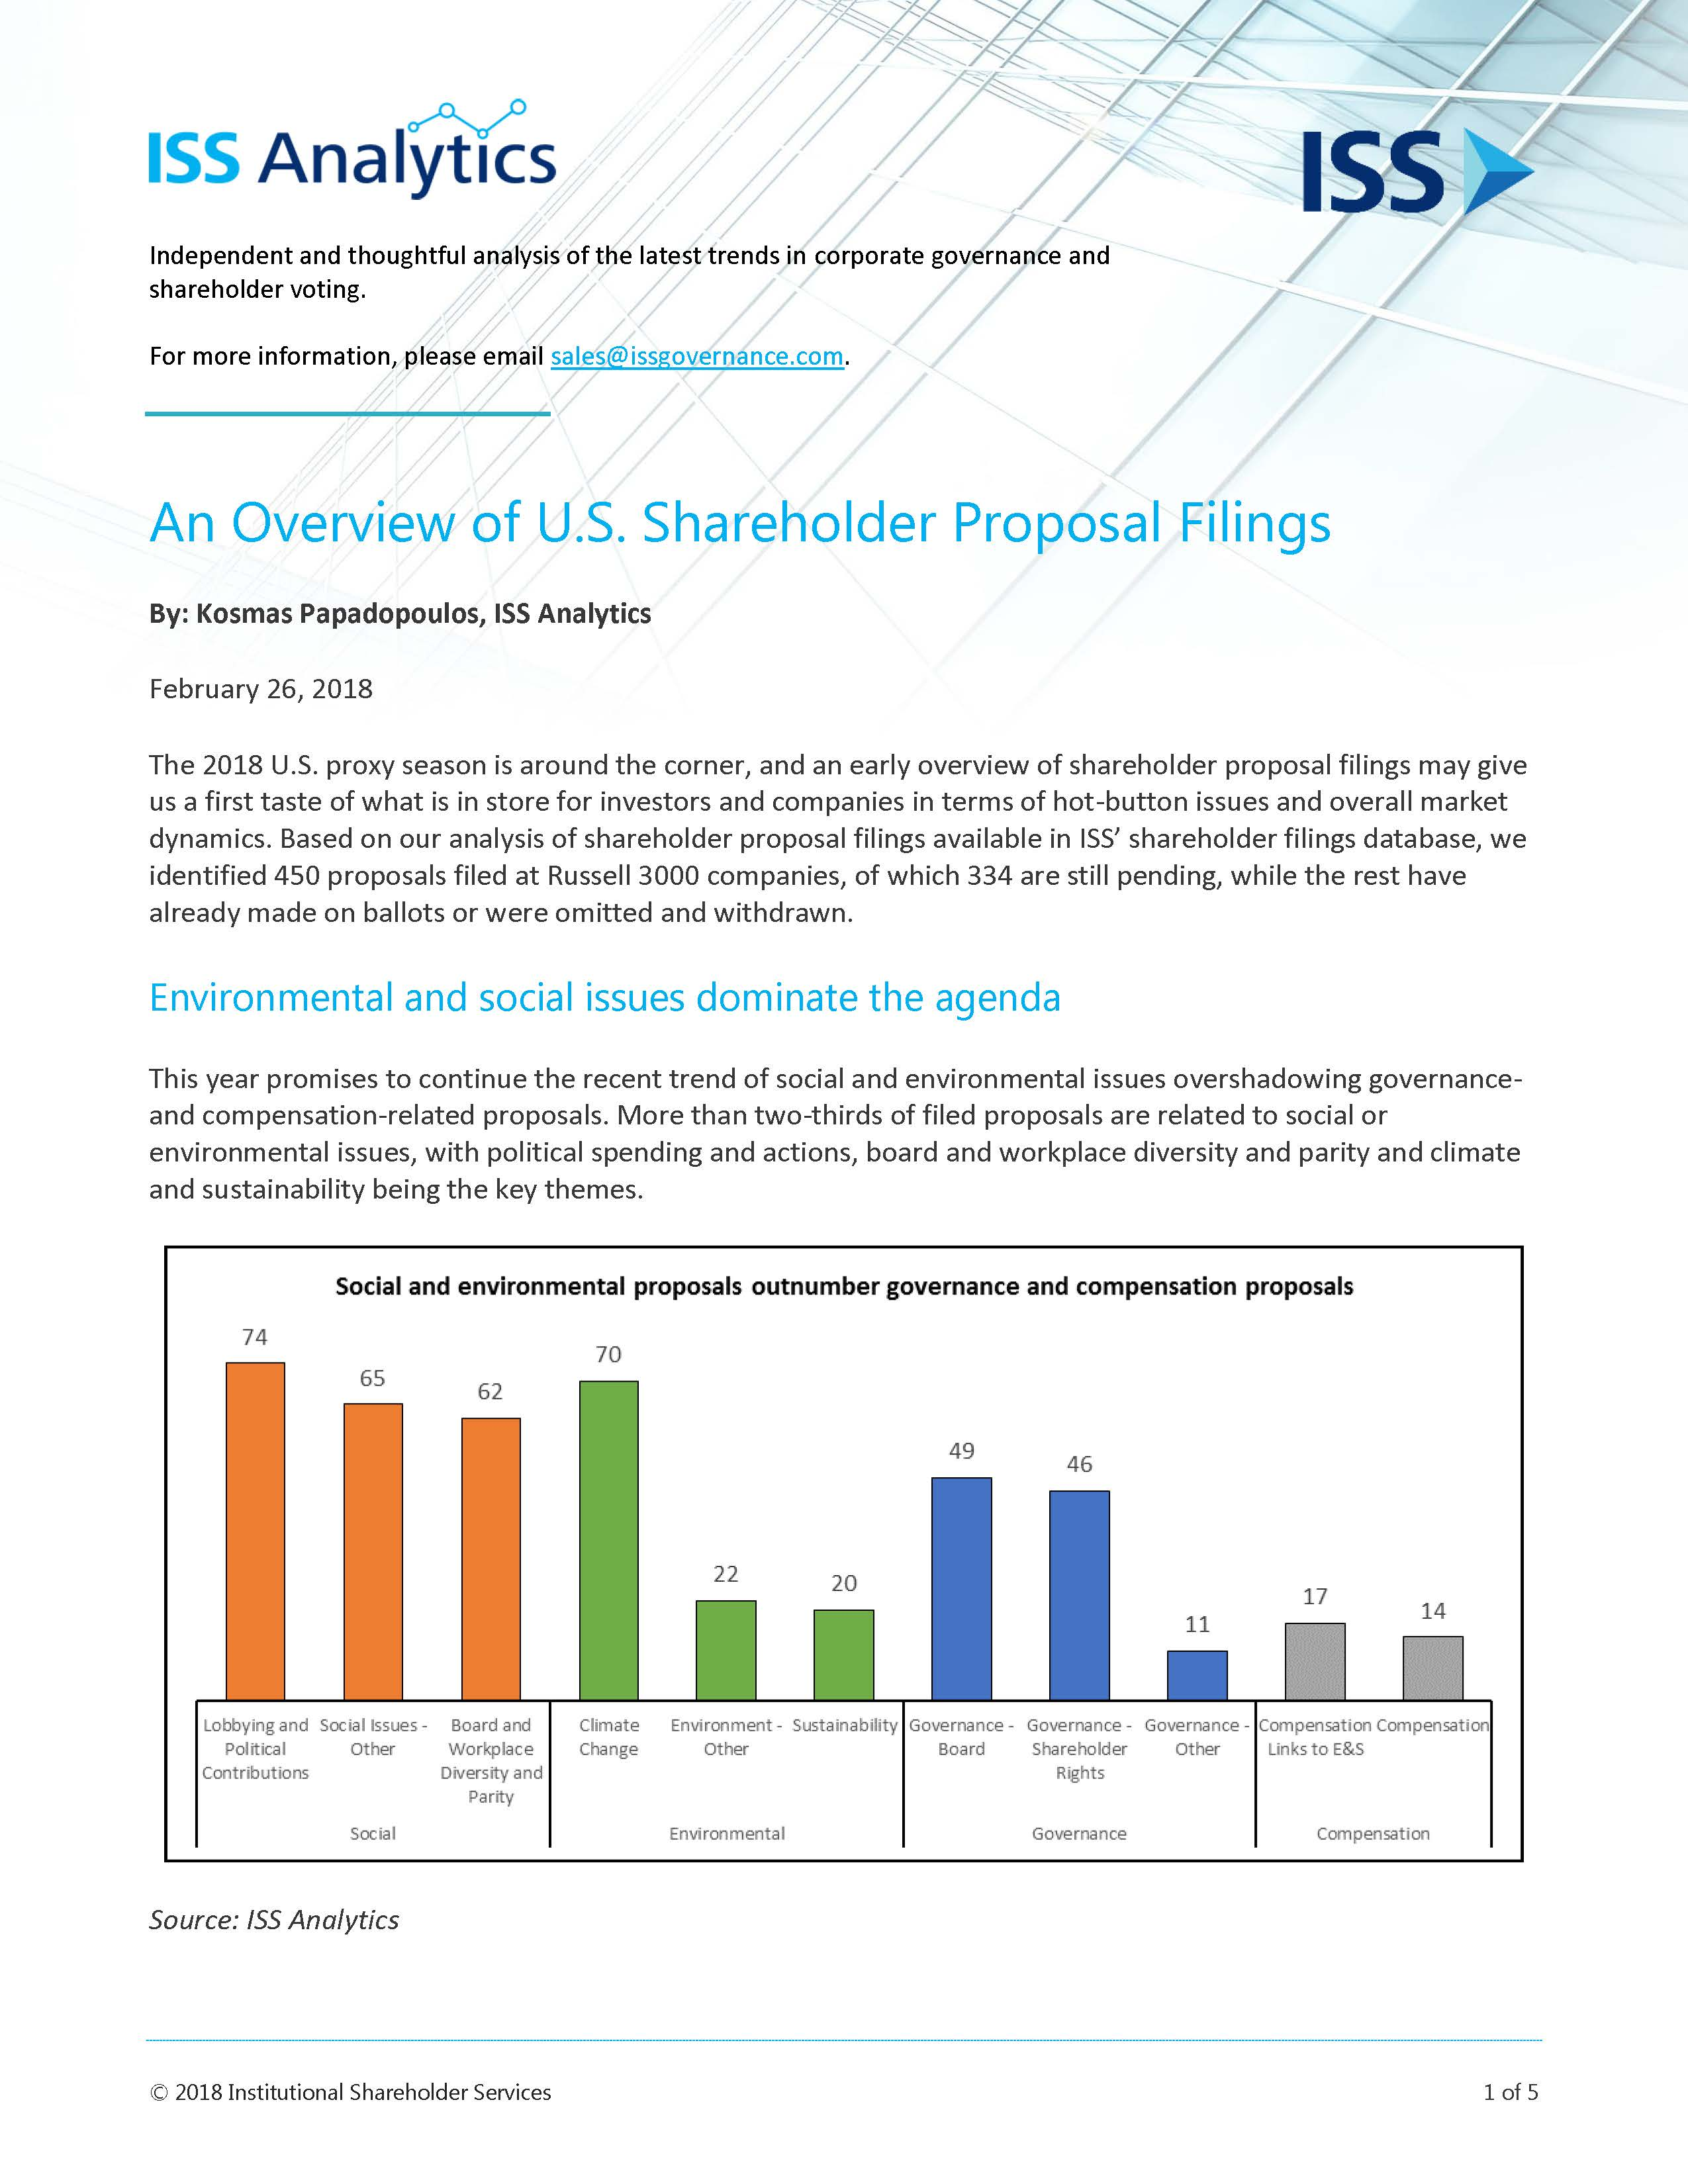 an-overview-of-u.s.-shareholder-proposal-filings_page_1